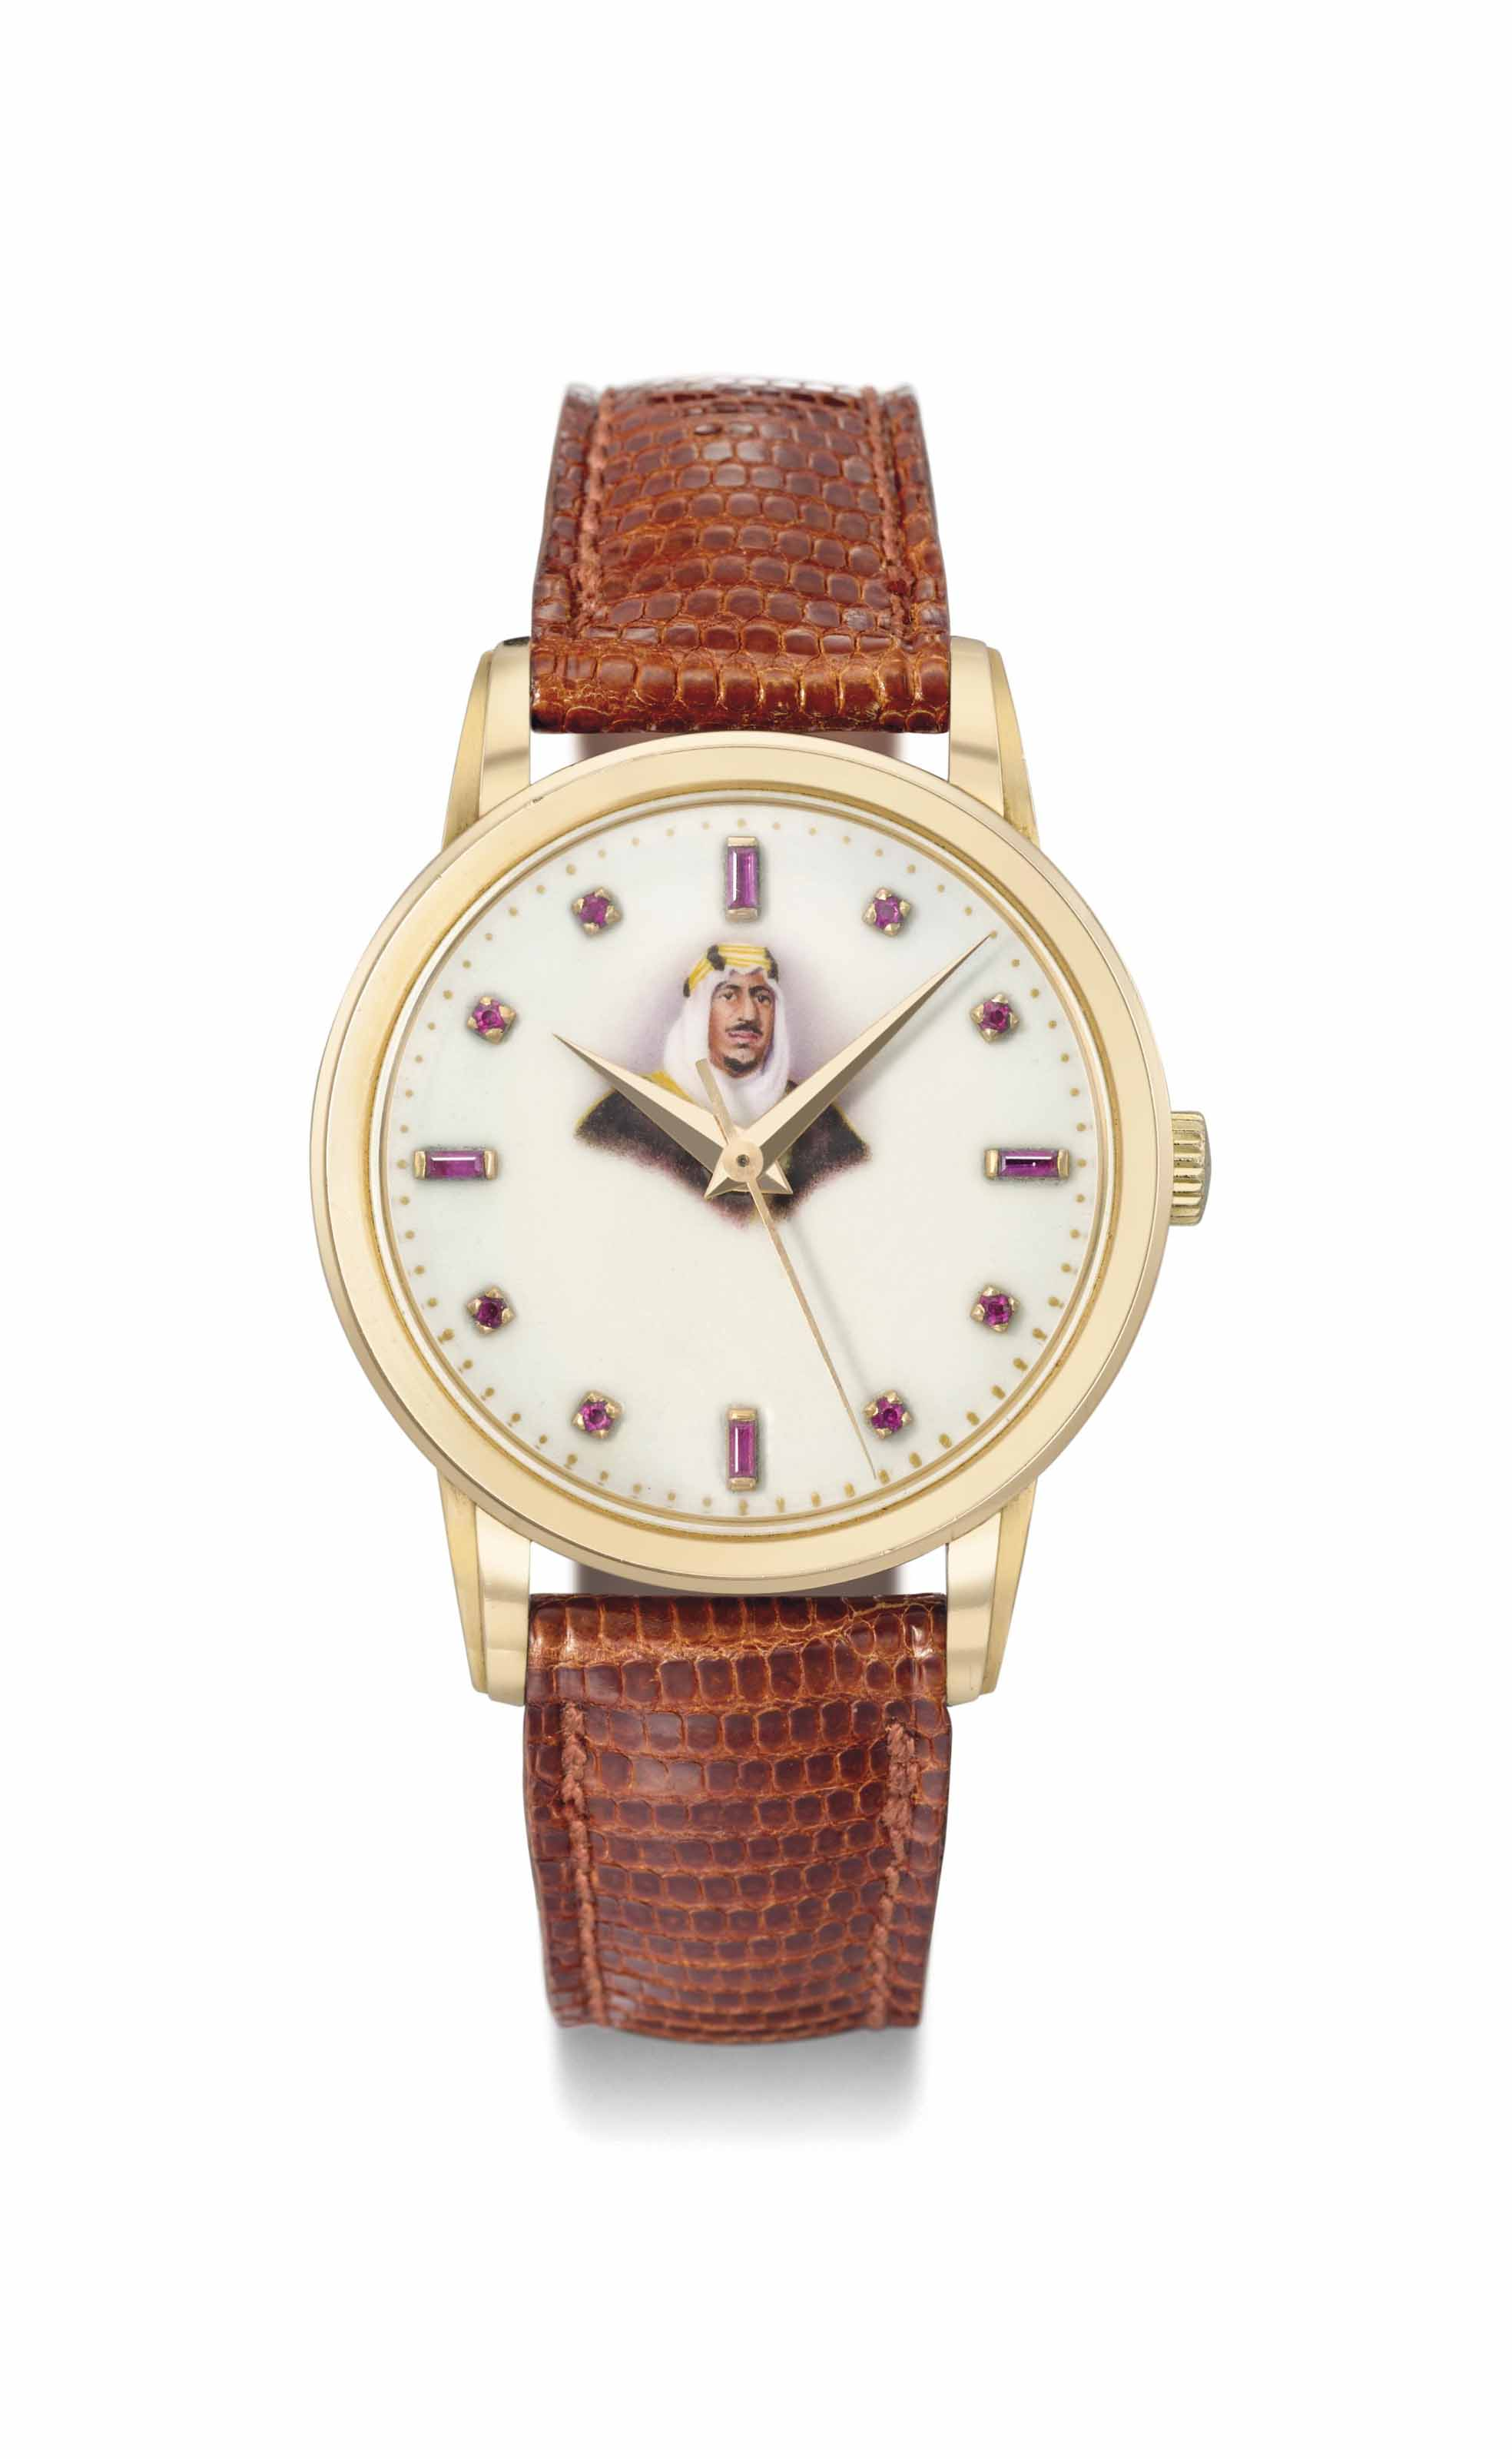 Patek Philippe. An extremely fine, large and rare 18K pink gold wristwatch with sweep centre seconds and ruby-set enamel dial with the portrait of King Saud bin Abdul Aziz